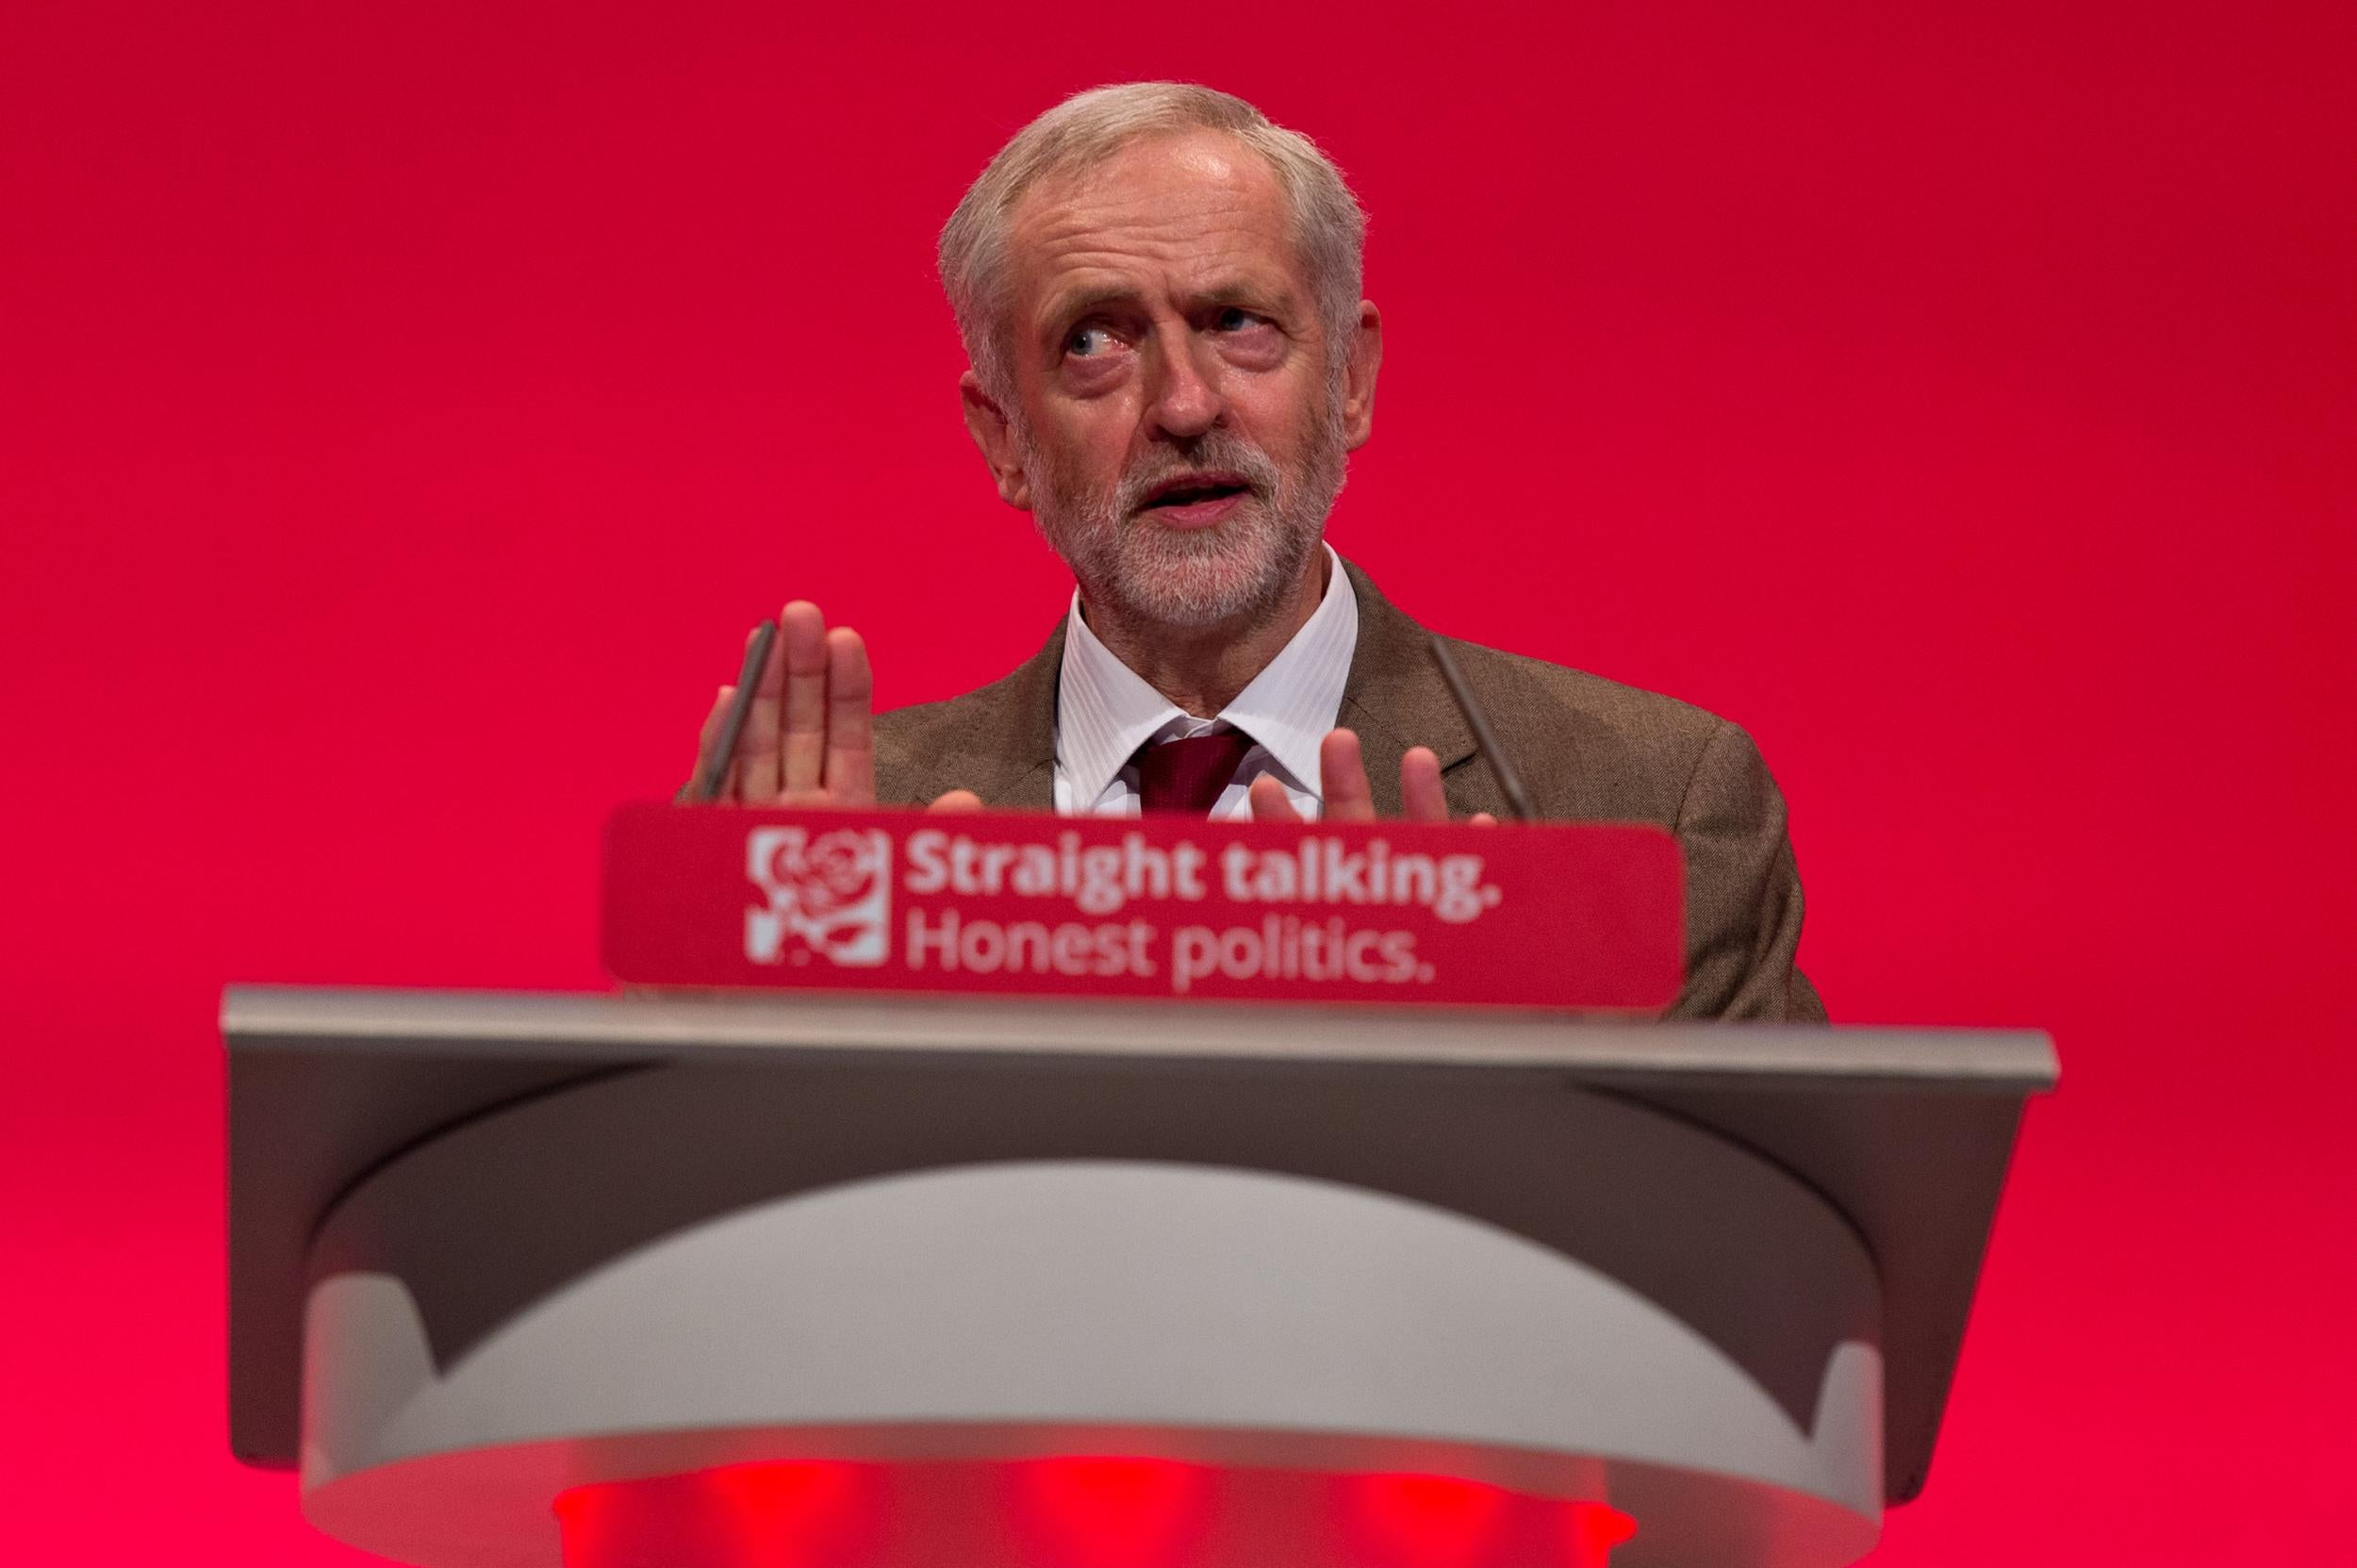 Labour gets 100,000 new members as leadership crisis deepens